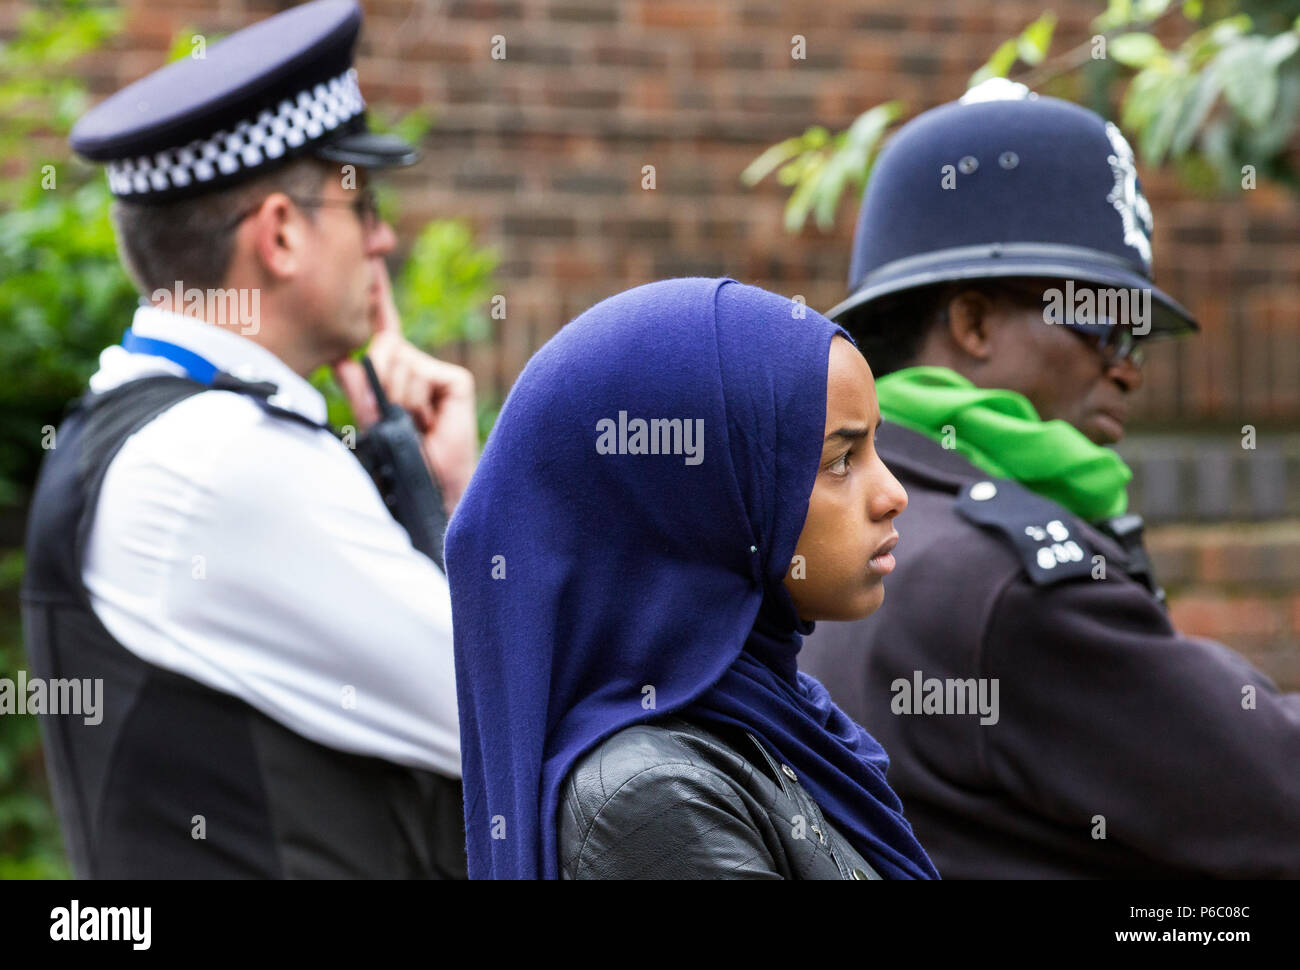 The first anniversary of the 24-storey Grenfell Tower block of public housing flats fire which claimed 72 lives. Young female listening during the public memorial service, standing by two policemen, South Kensington, London, UK, 14th June 2018. - Stock Image